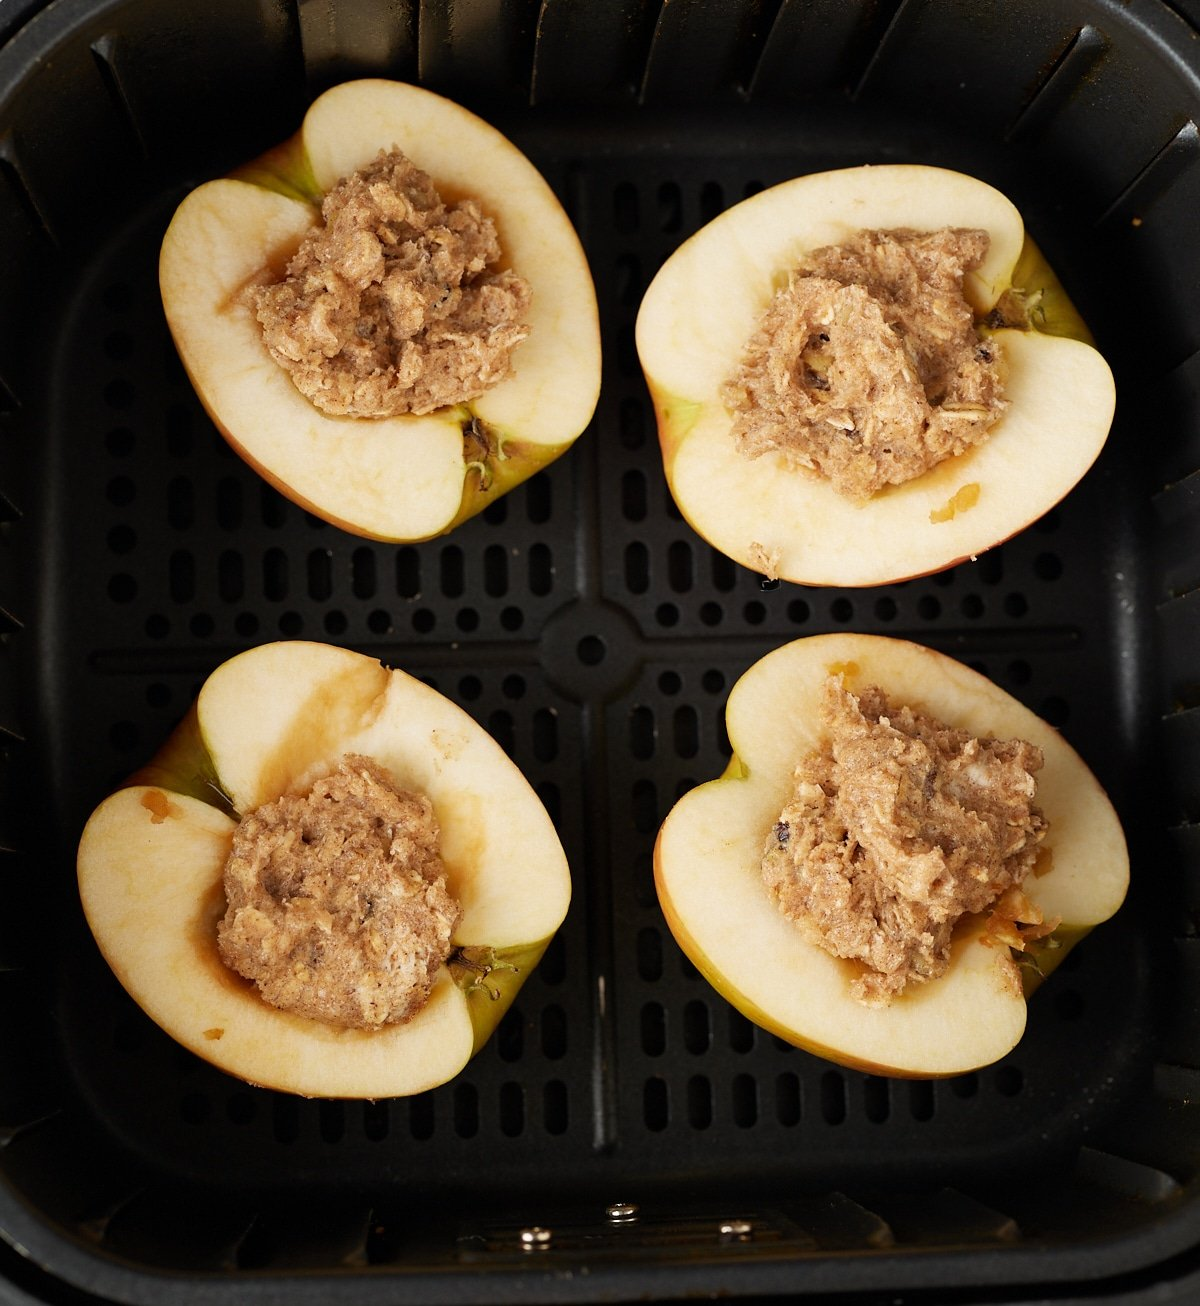 The apples with filling placed into the air fryer basket.